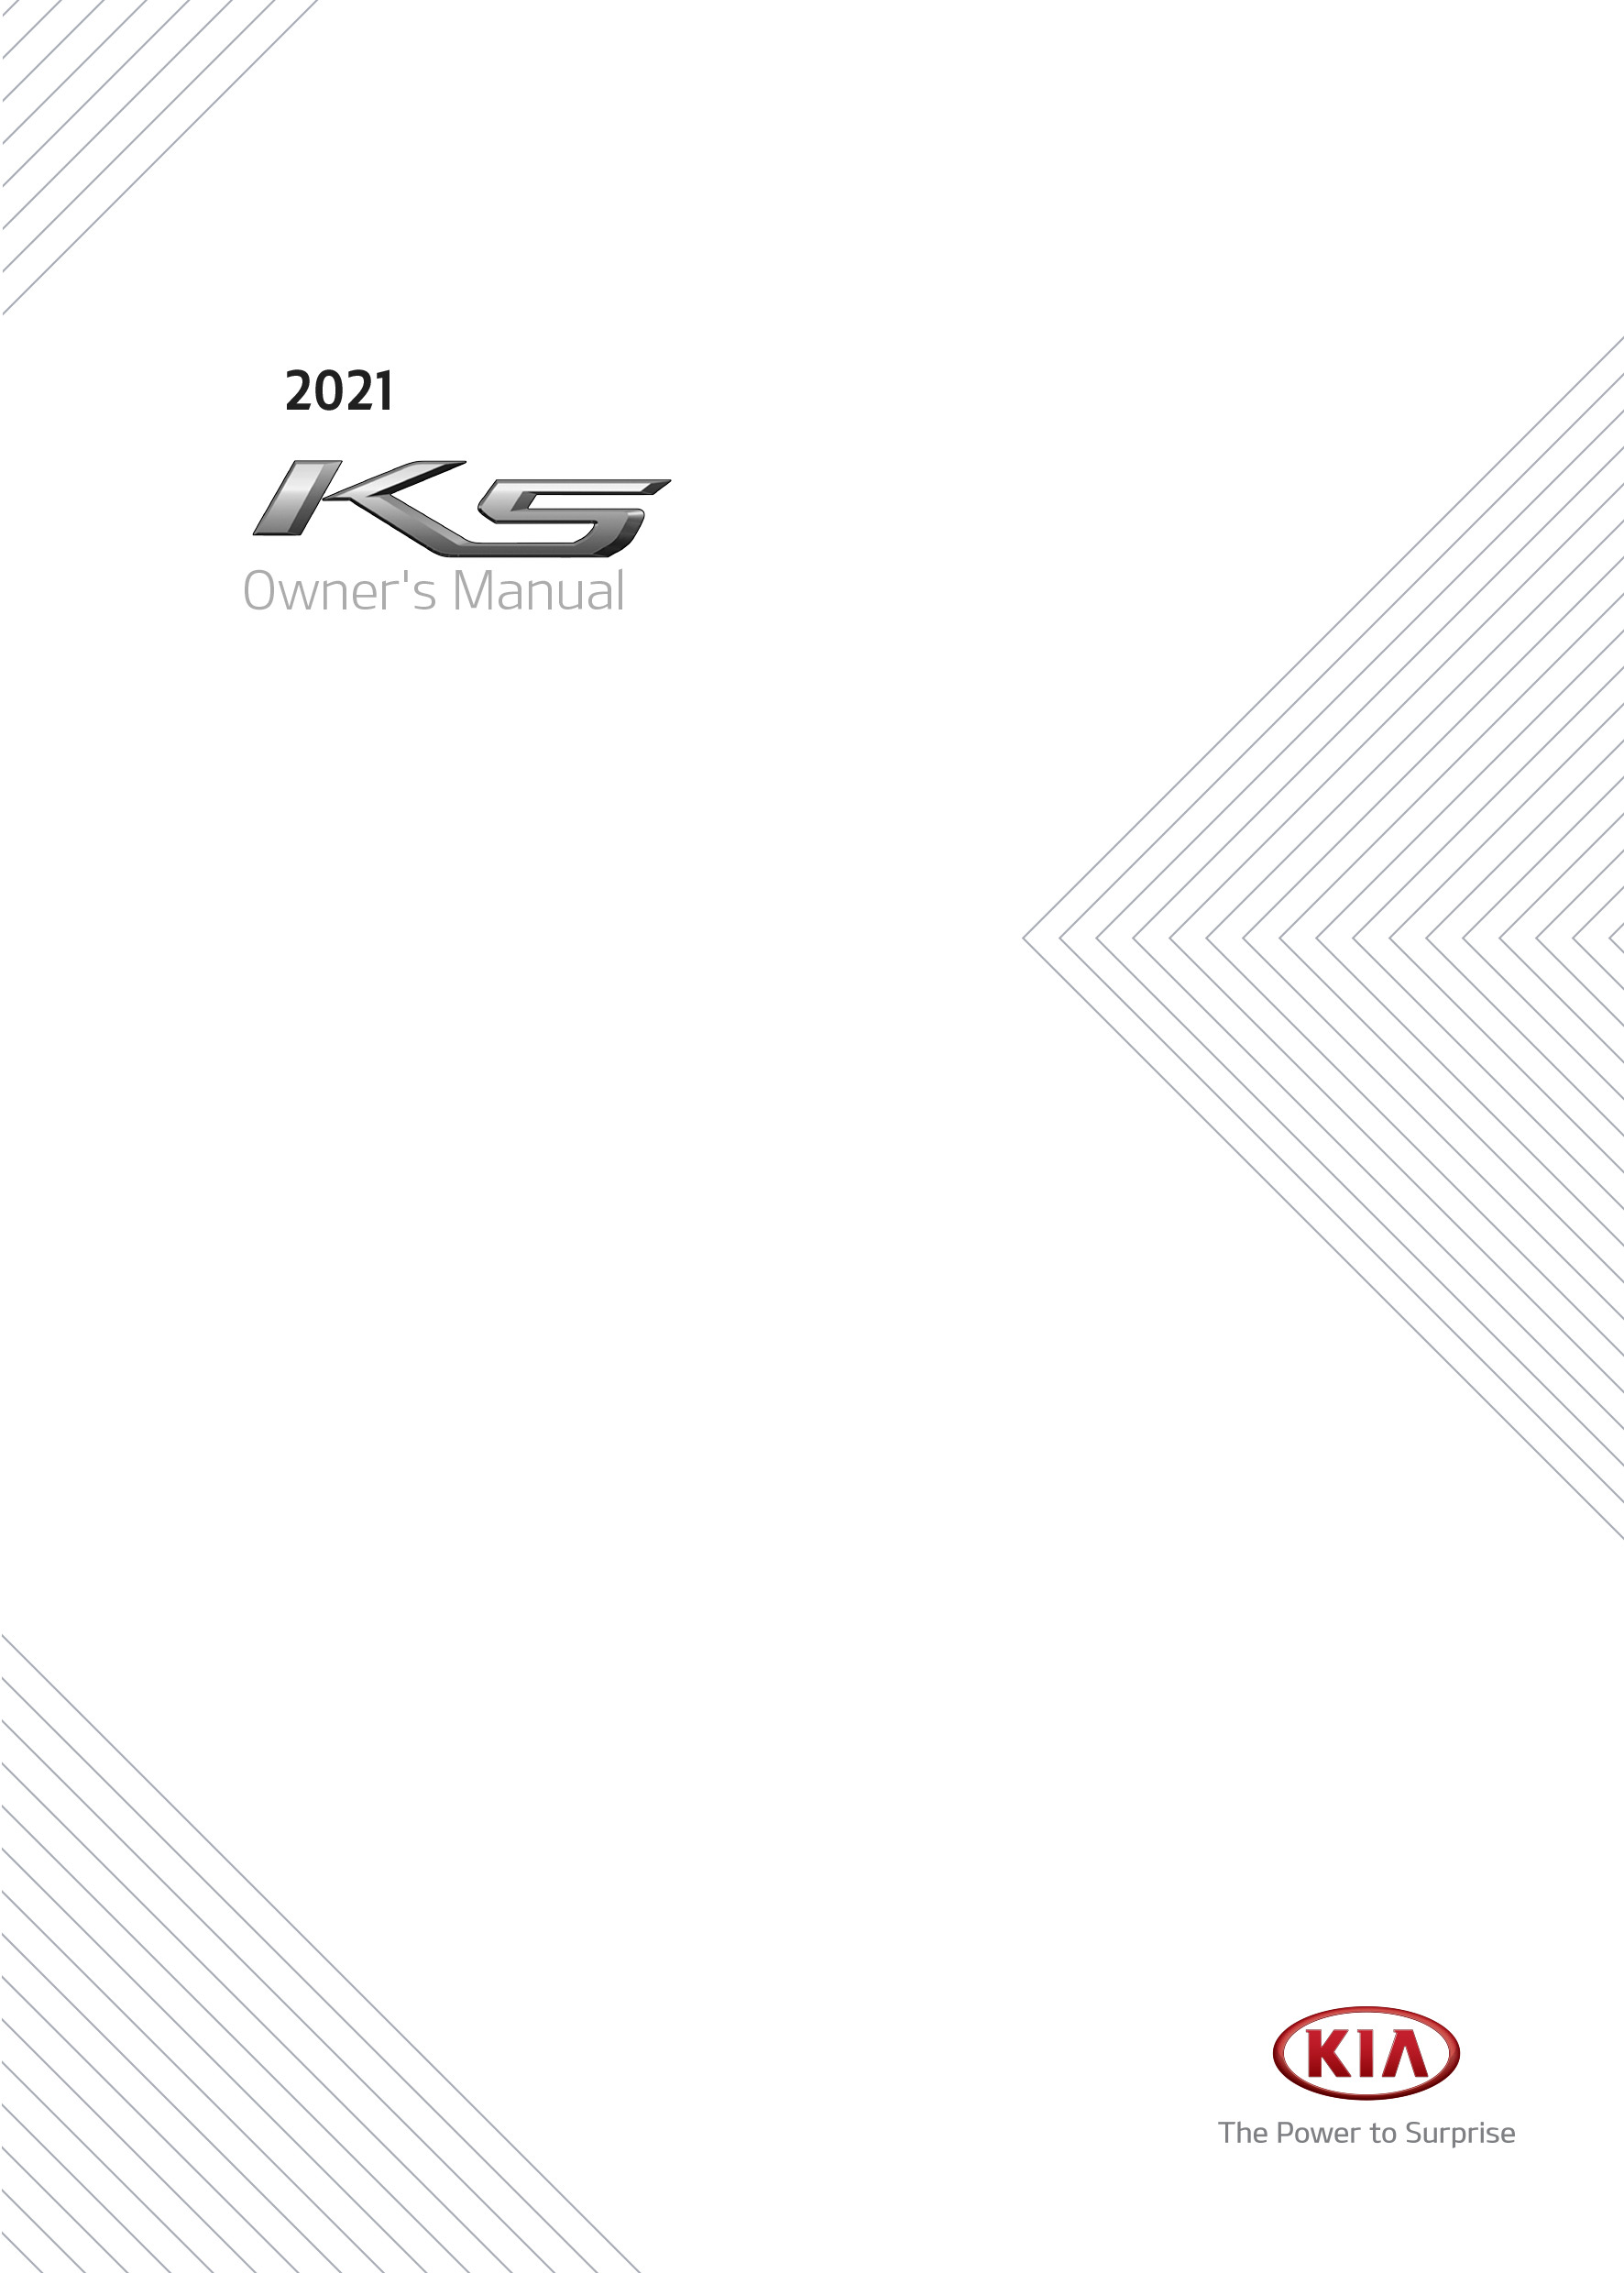 2021 Kia K5 owners manual